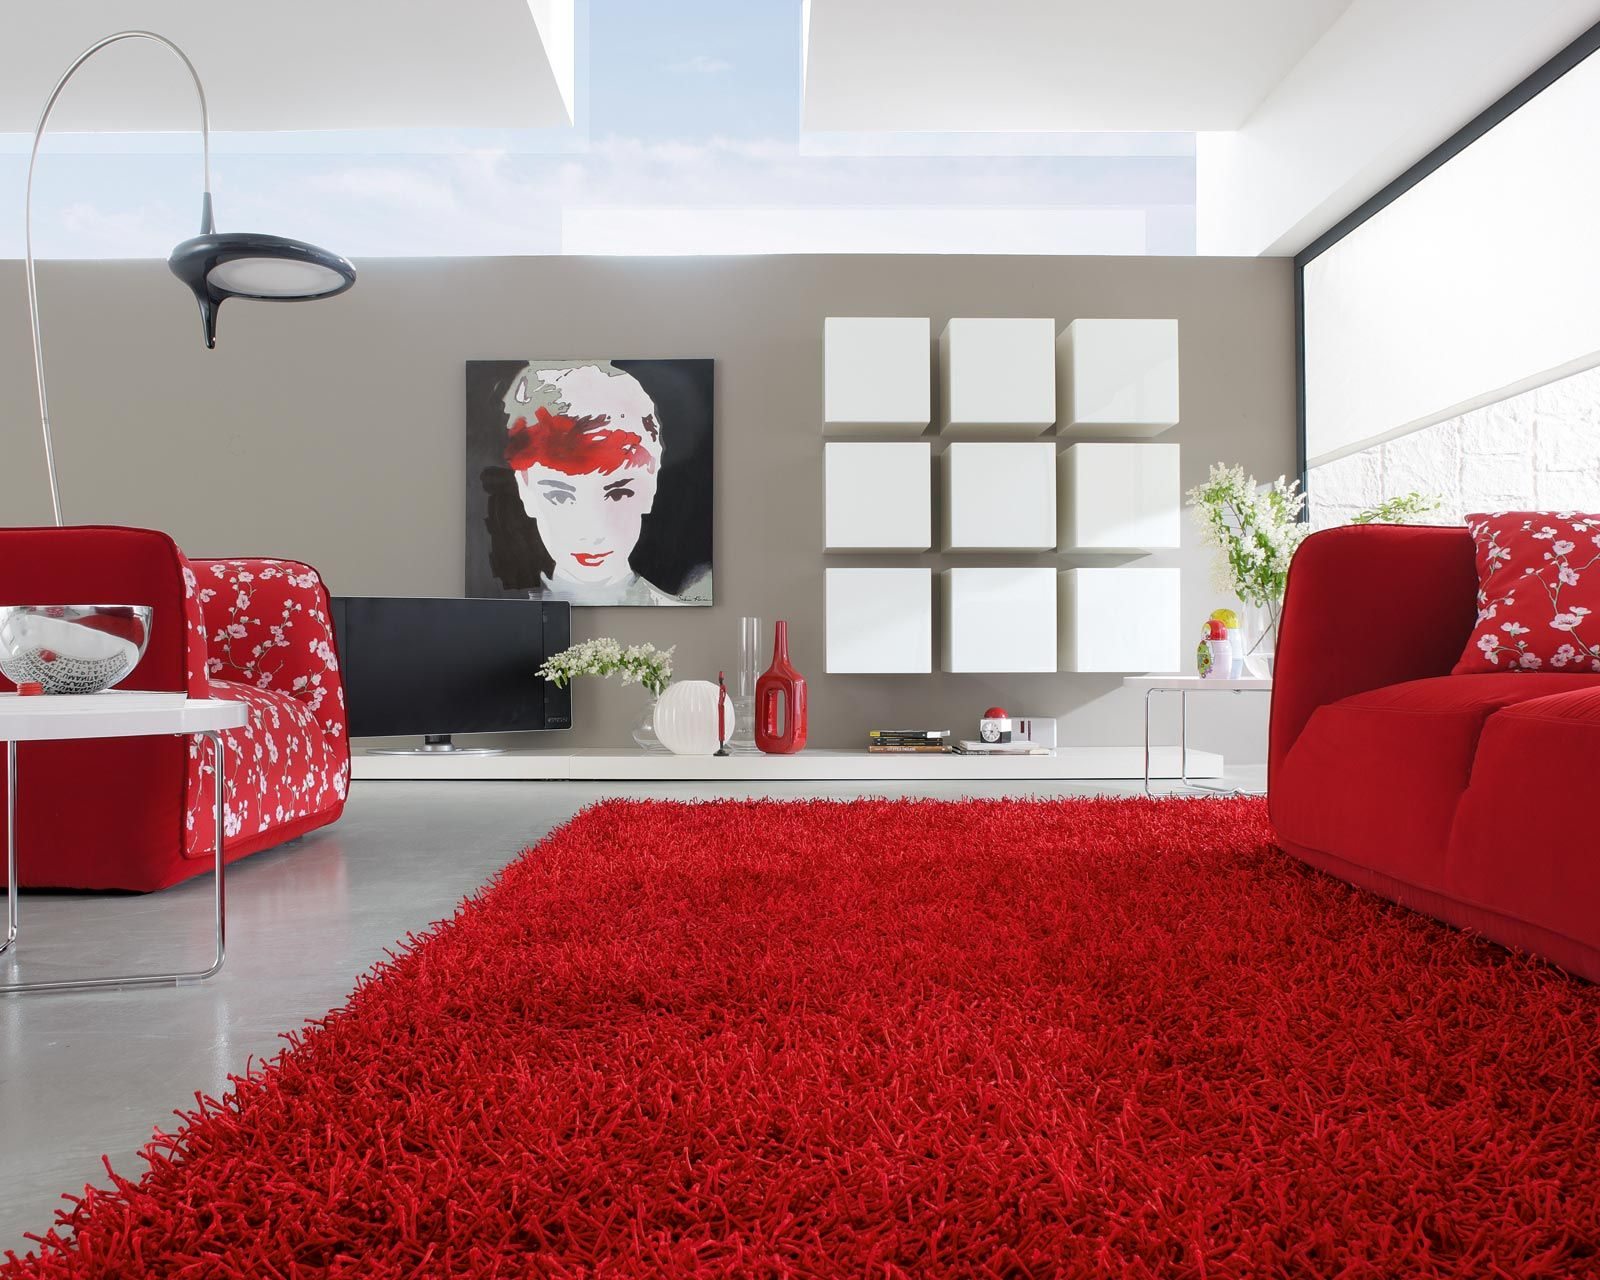 This modern room setting uses rhythm with the colour red rather